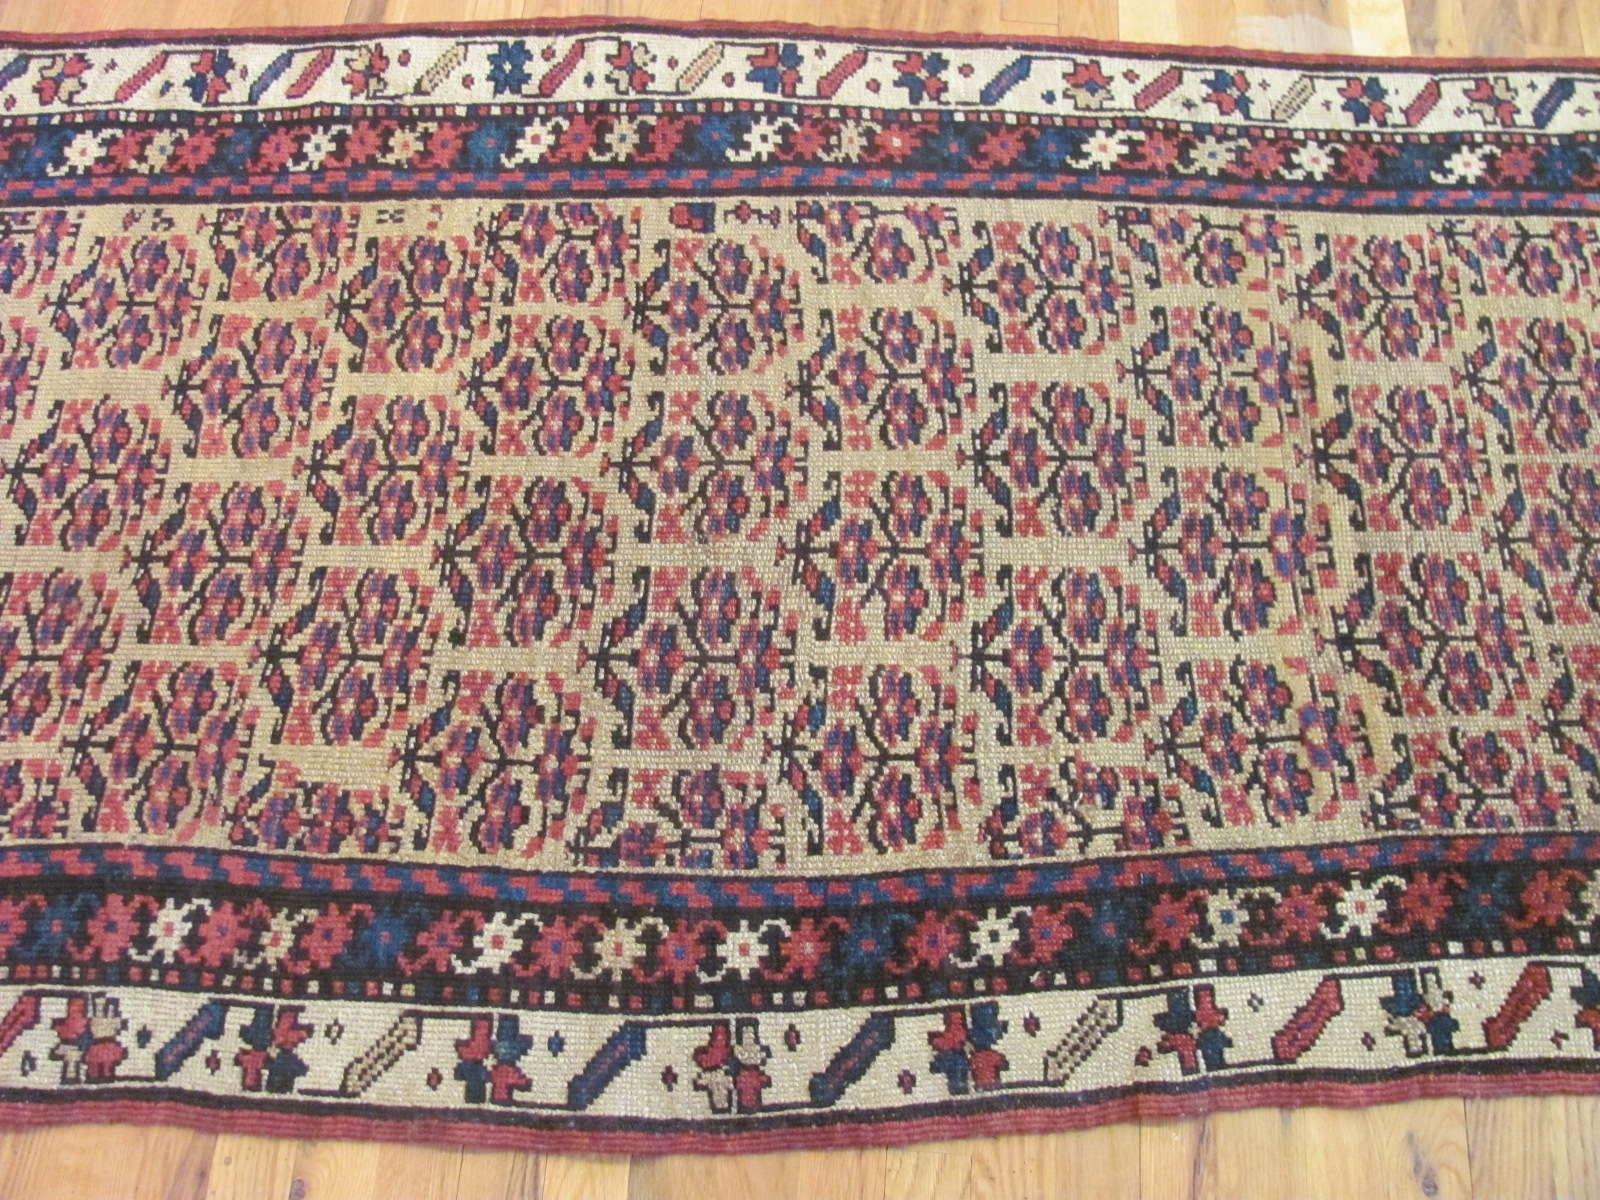 24448 antique Persian Kurd runner rug 3,4x10 -2